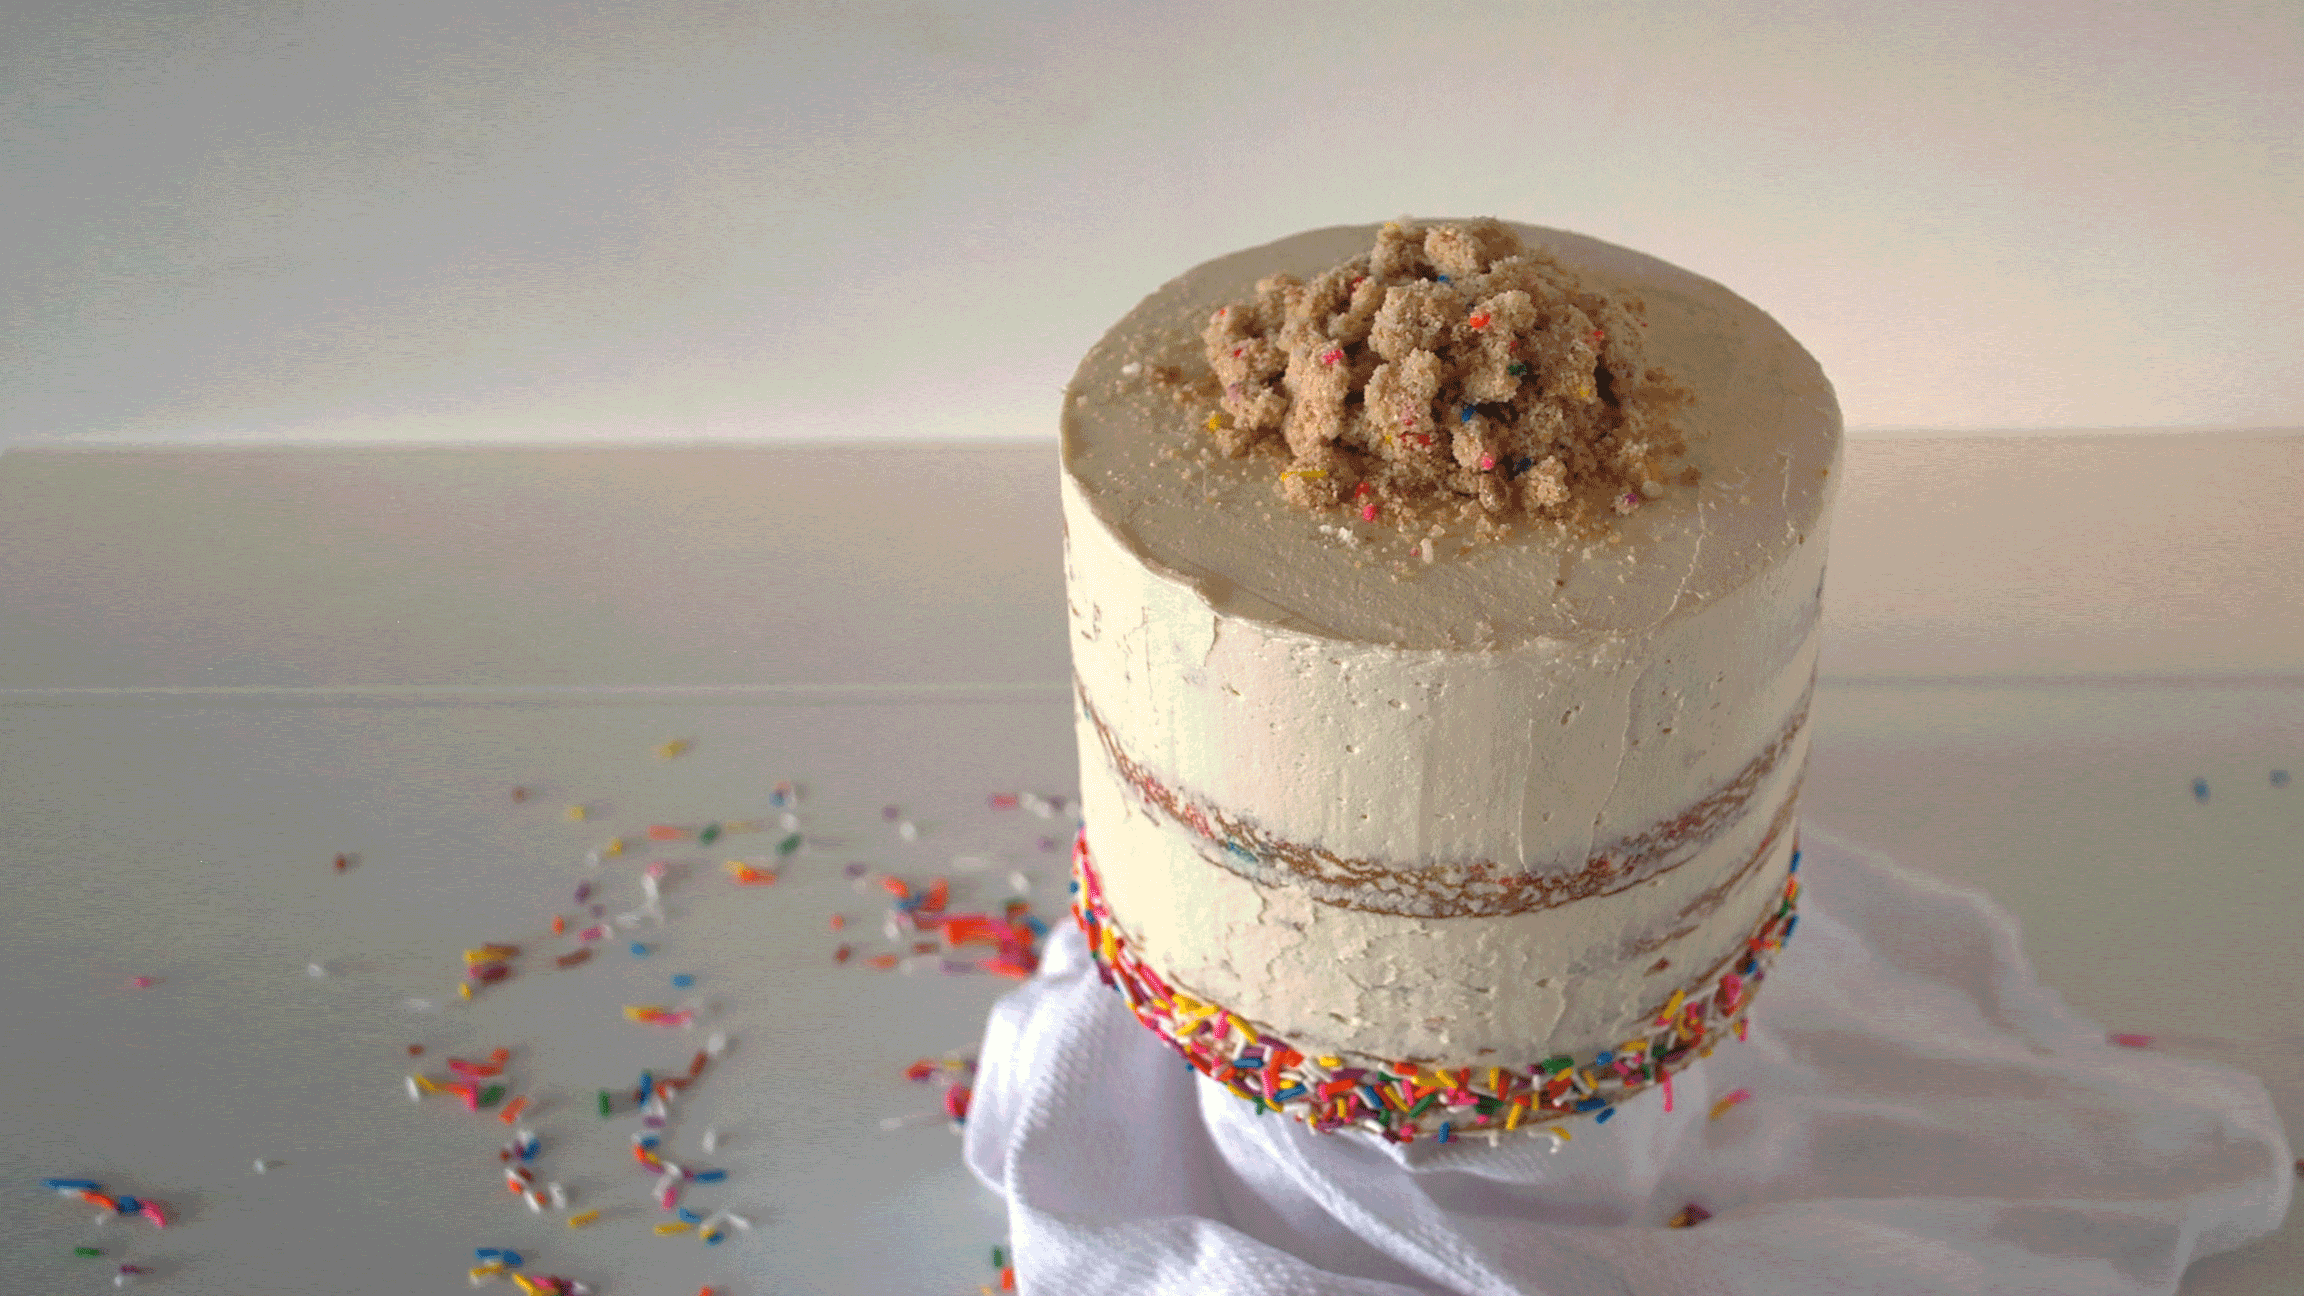 kitchen-whiskers-blog-momofuku-birthday-cake